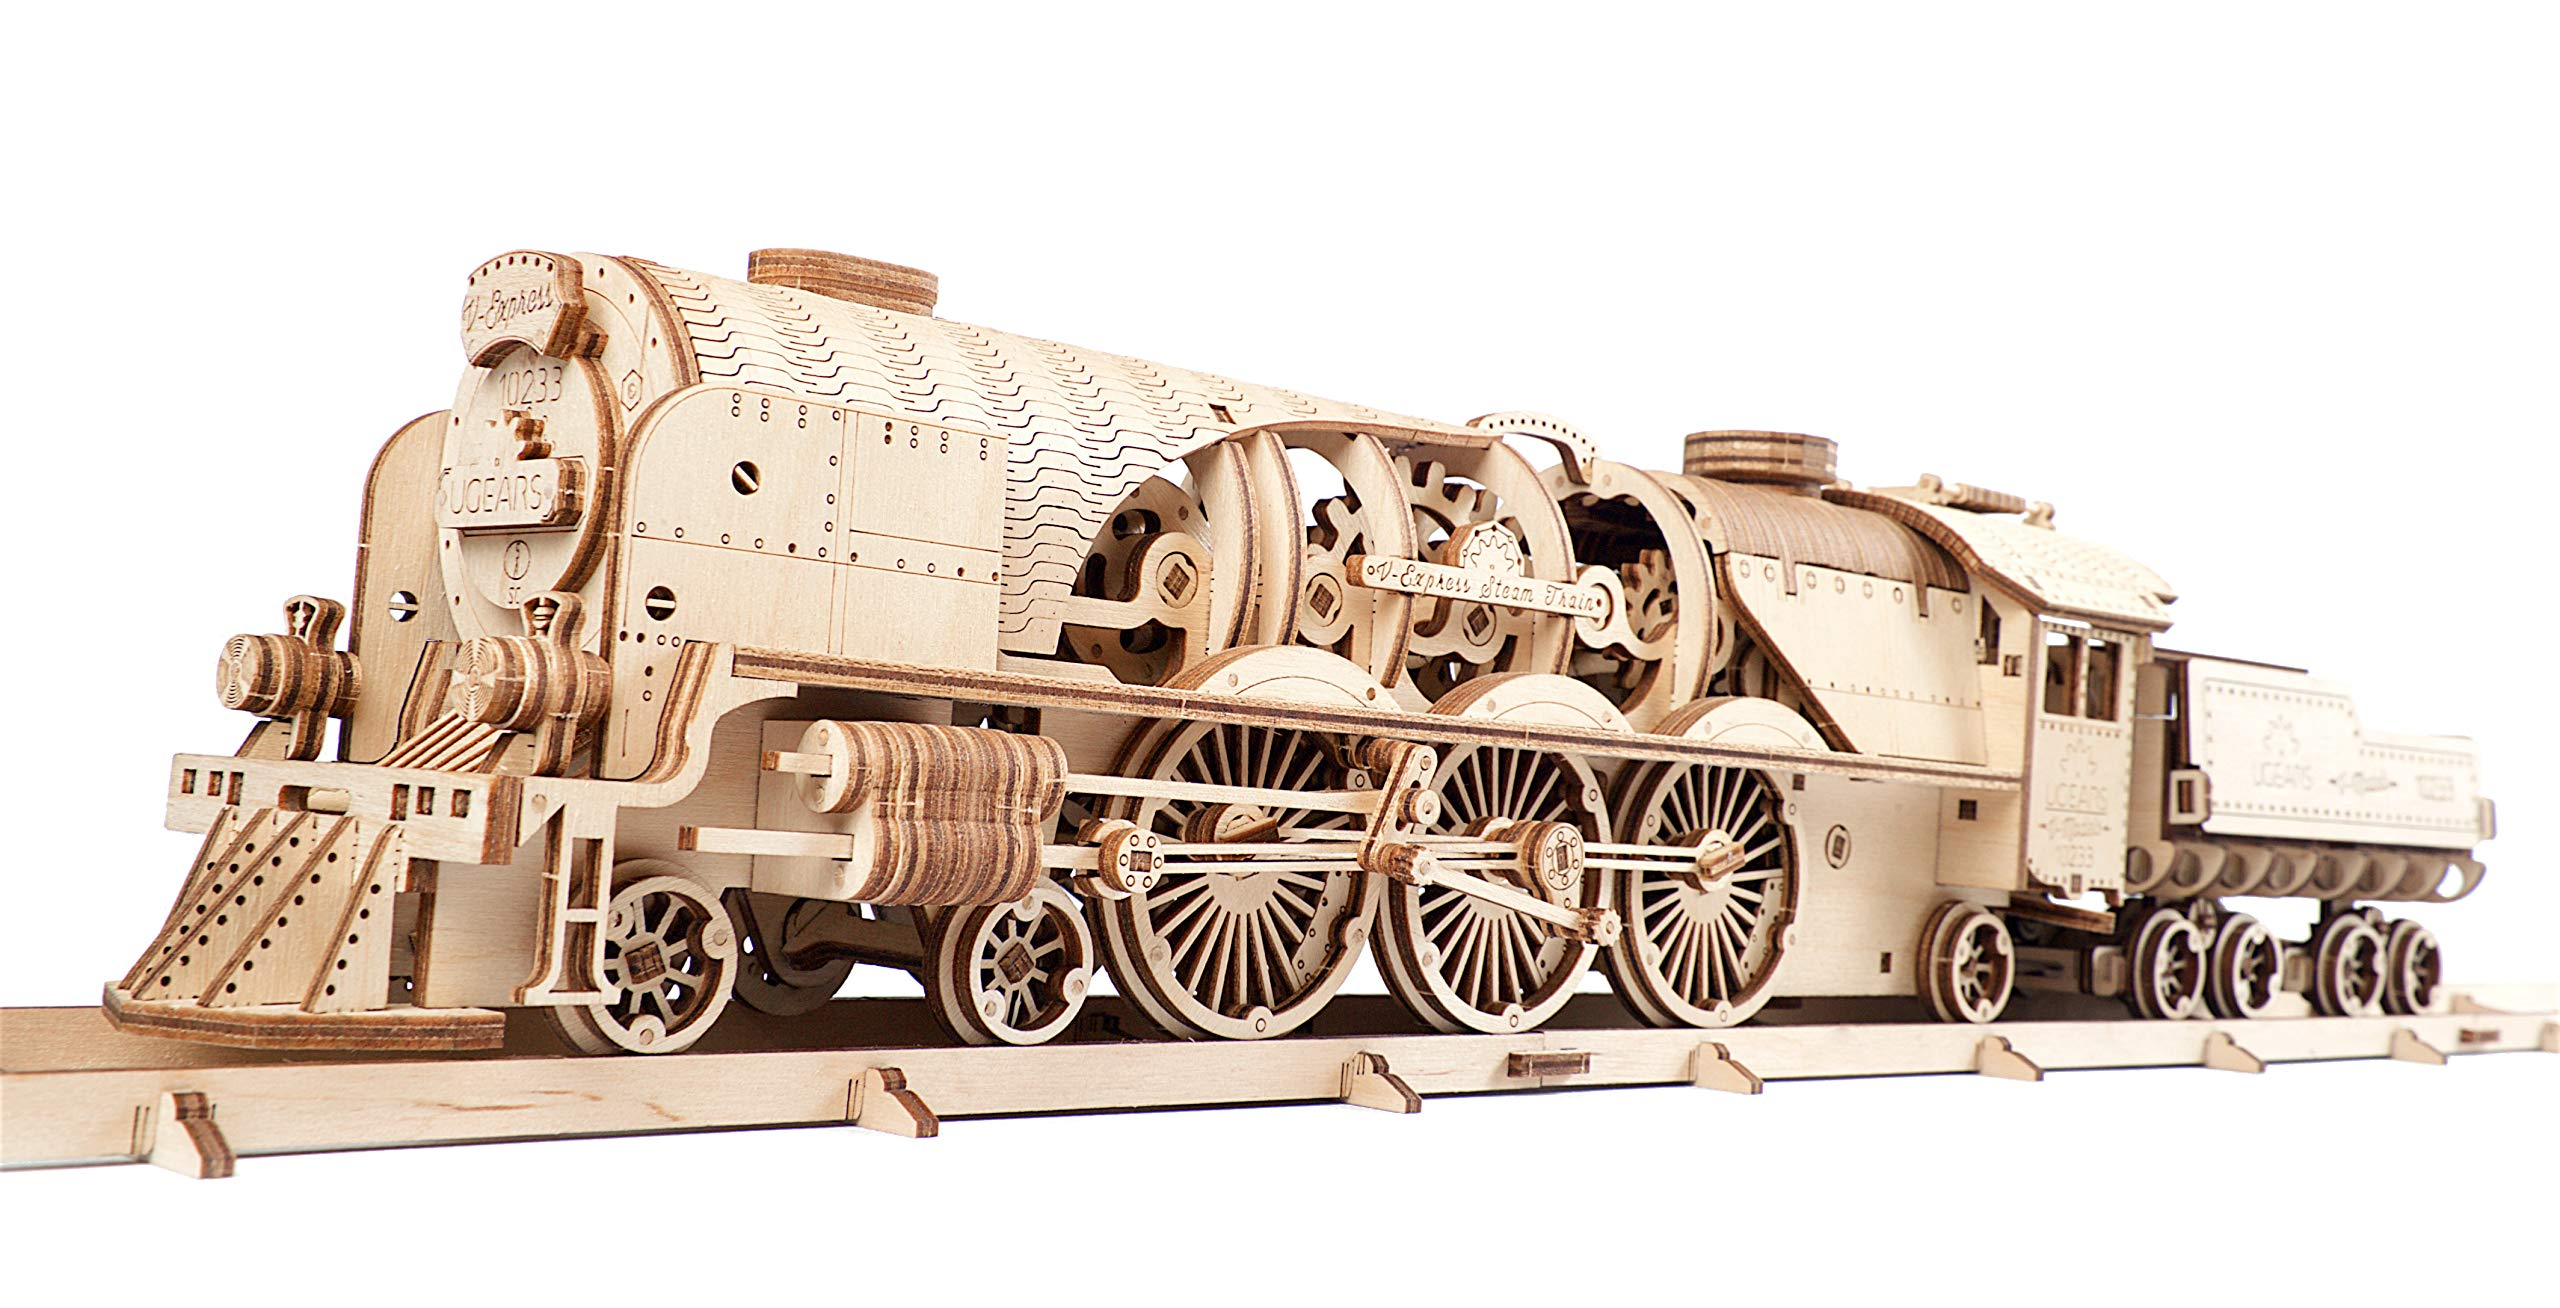 UGEARS Train en Bois Model 3D - Locomotive  Tender  Chemin de Fer - Puzzle A Encastrement Adulte  Miniature Mécanique  à Construire  Jeu Educatif E